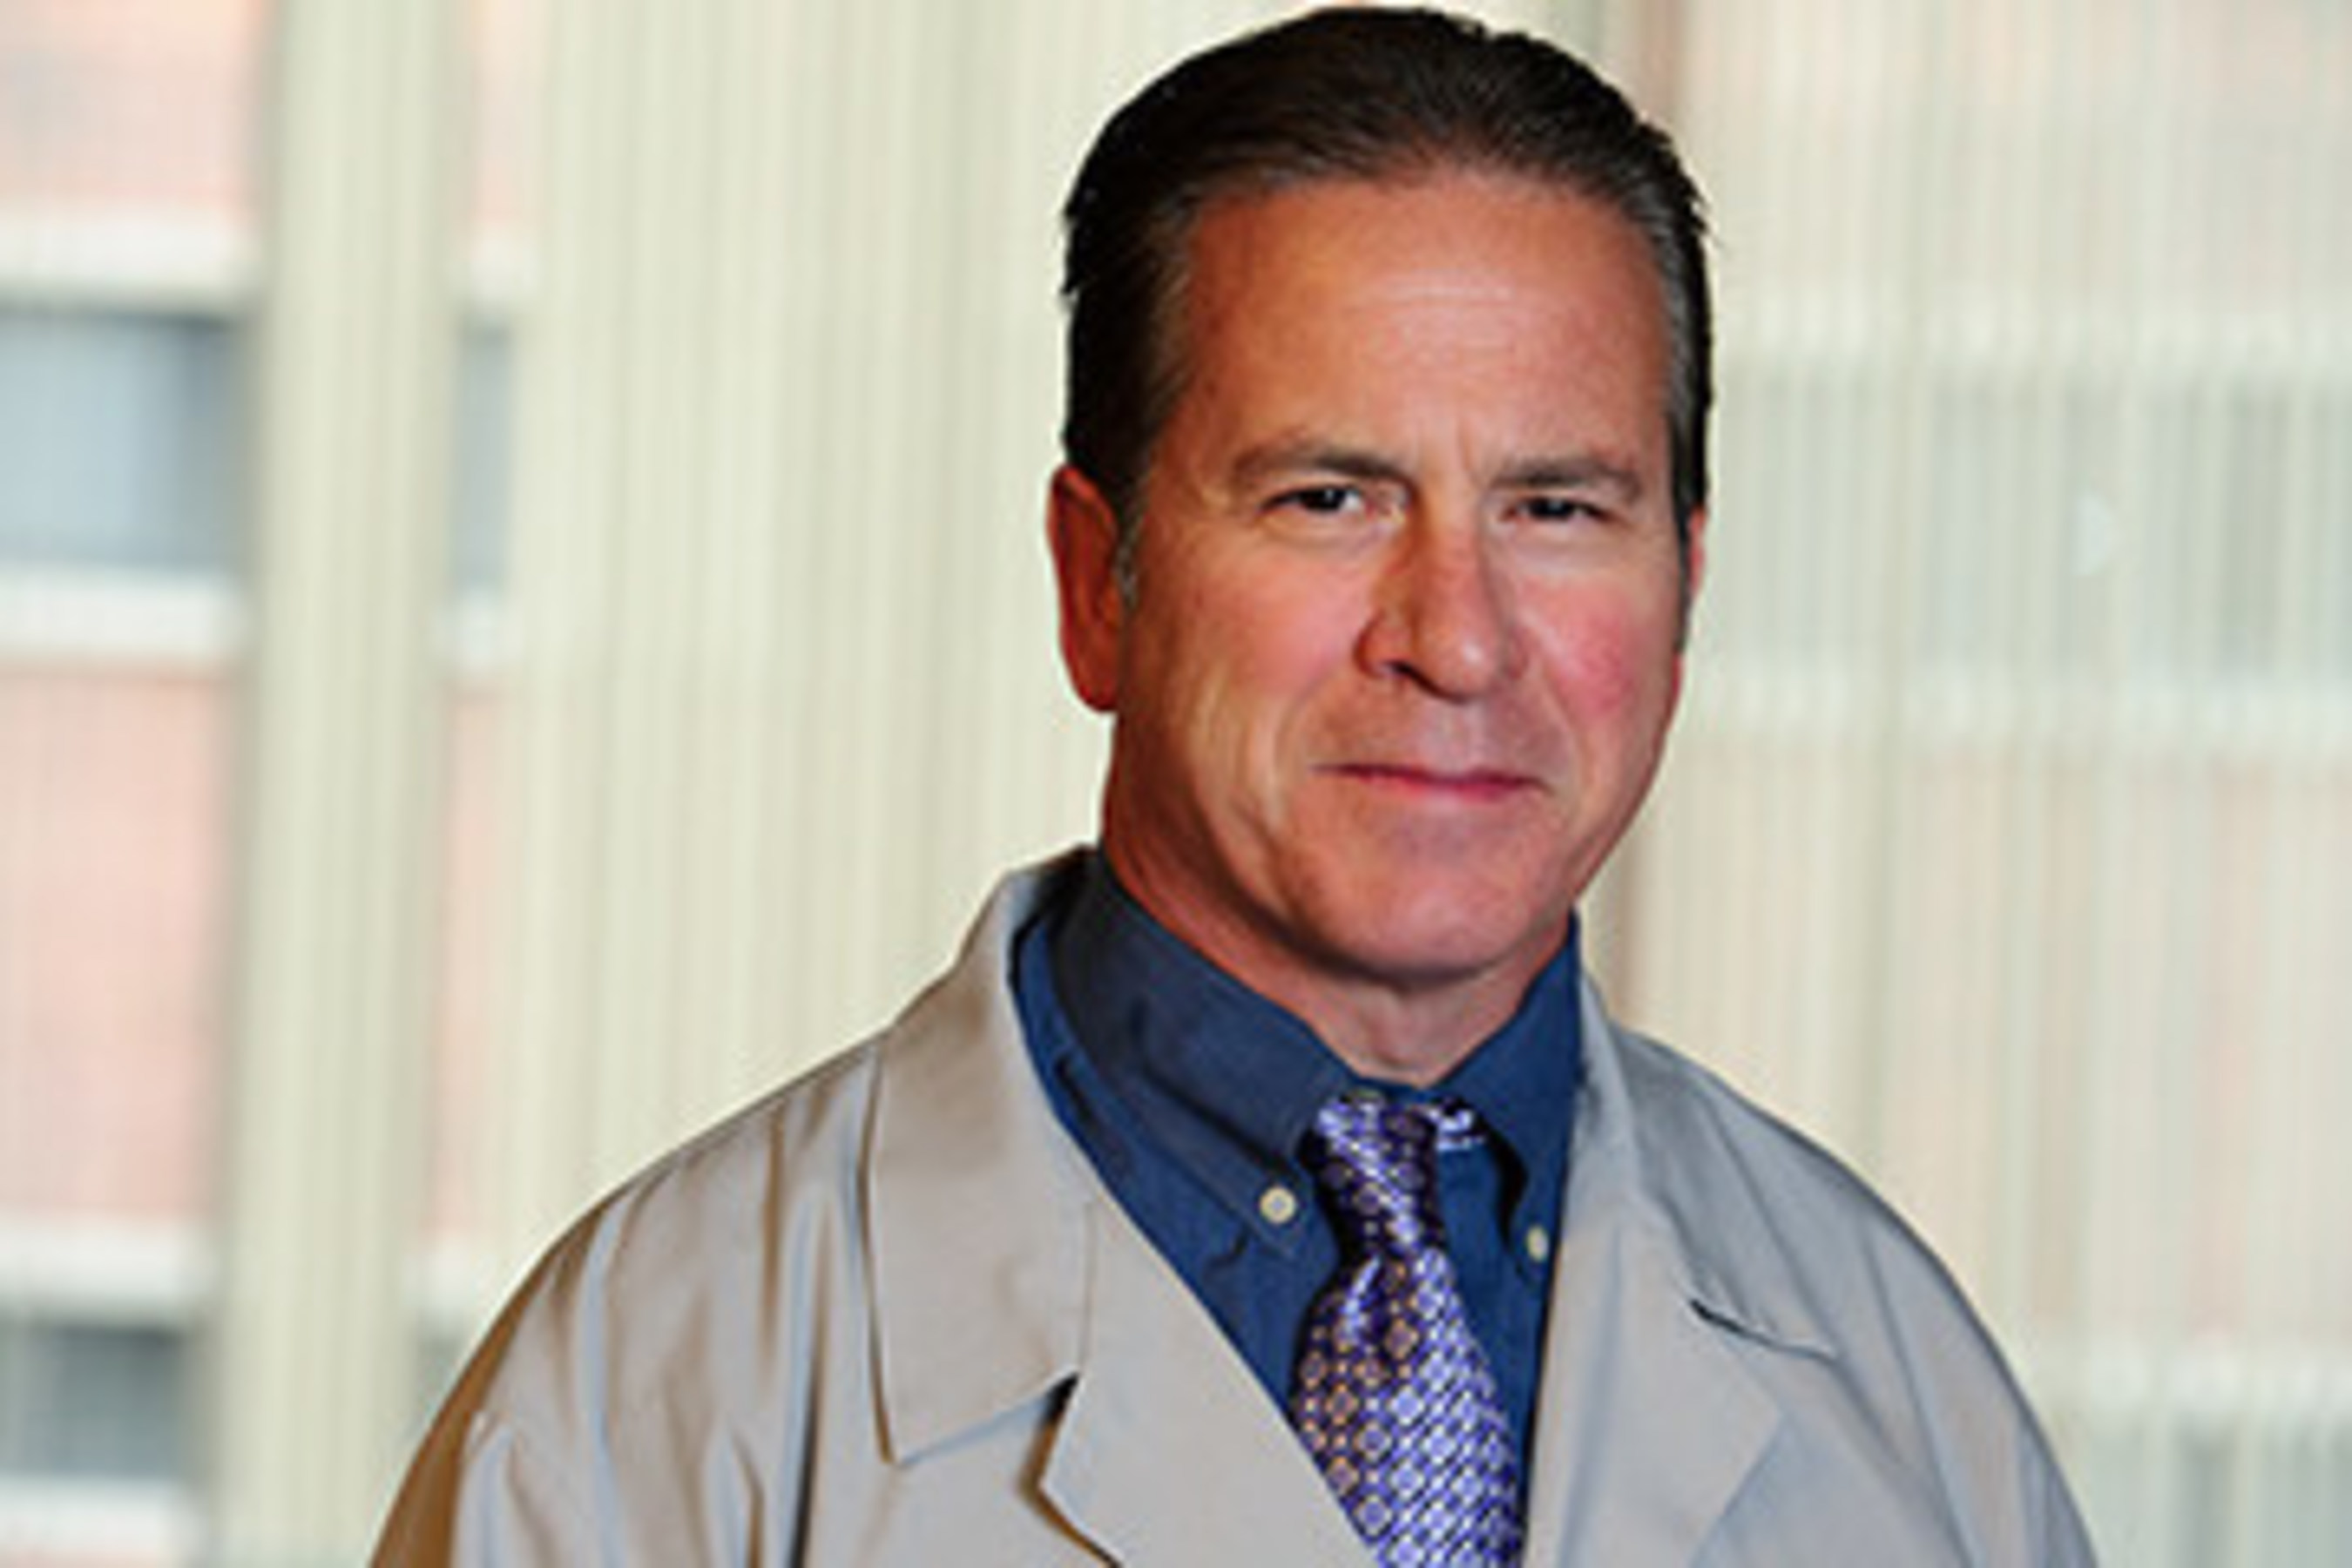 Julian Bailes, MD, Chairman, Department of Neurosurgery, NorthShore University HealthSystem